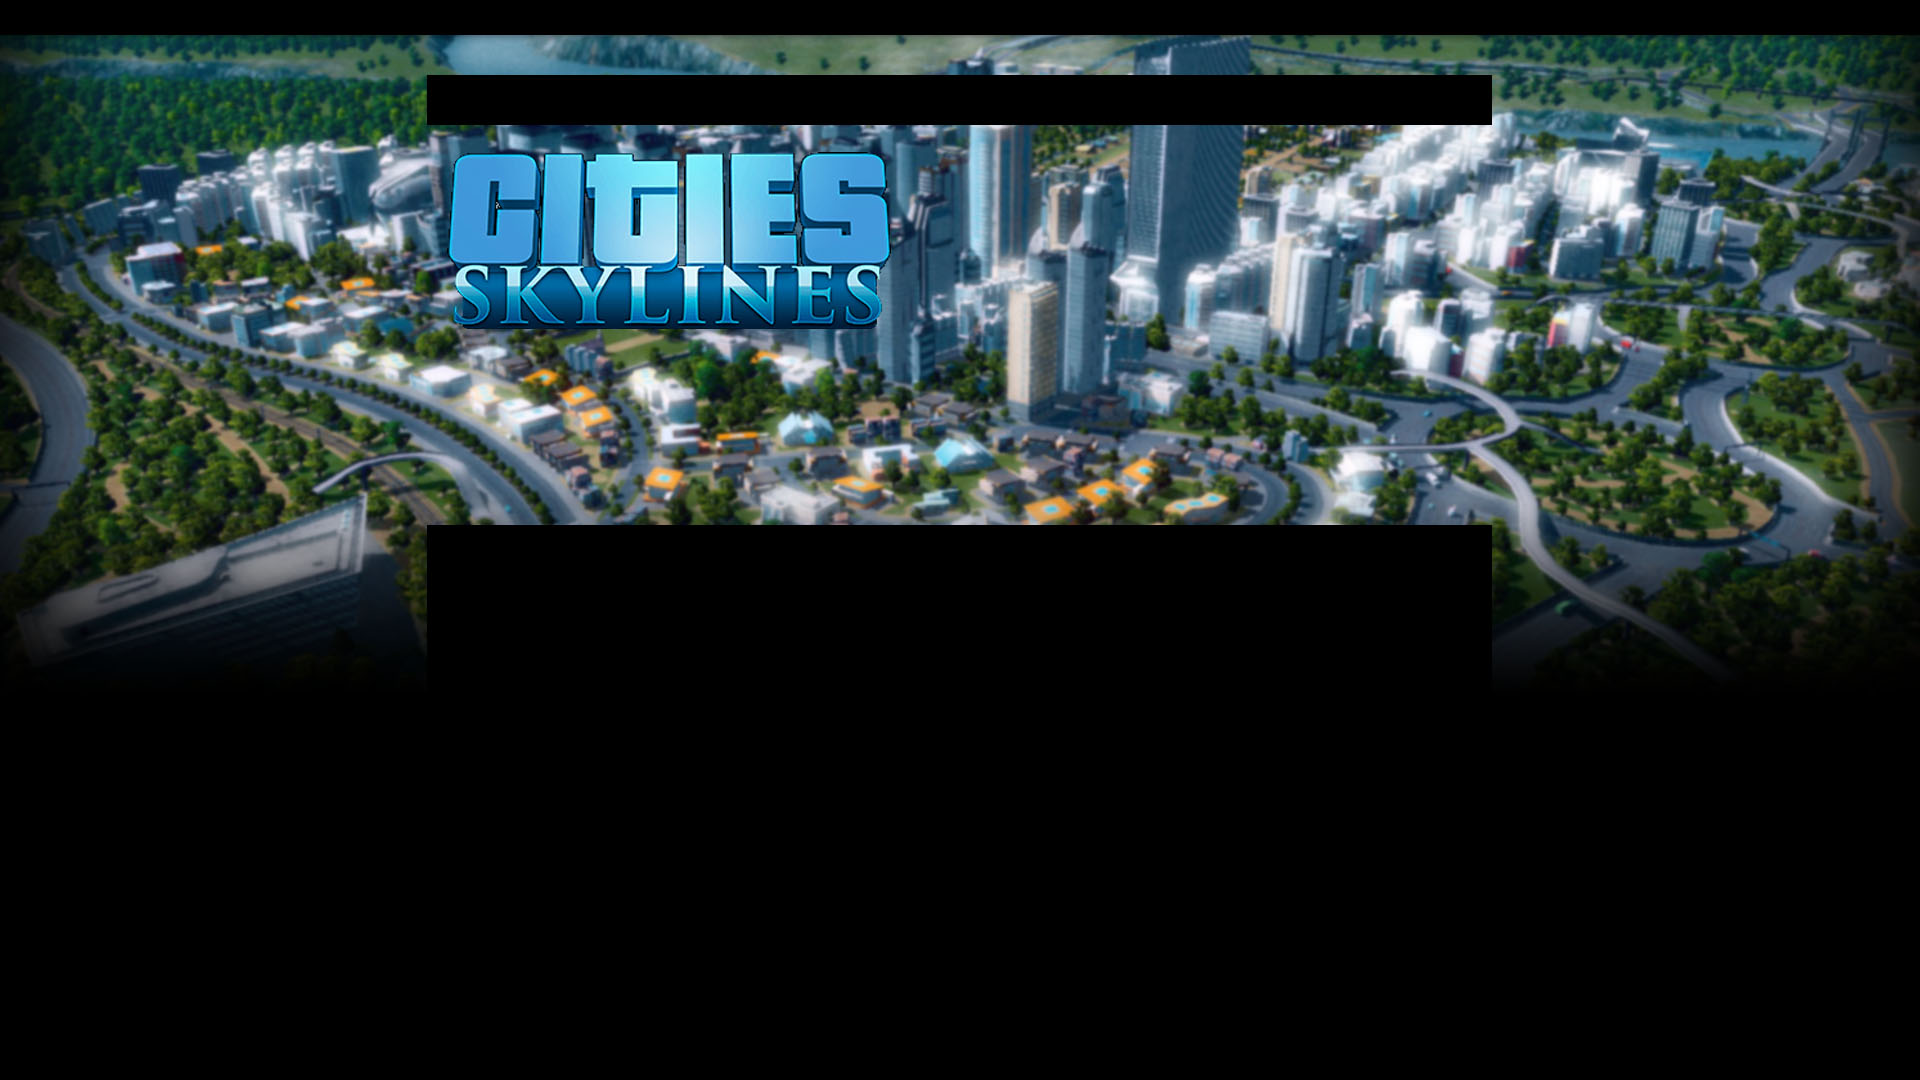 Cities: Skylines Standard and Deluxe video game